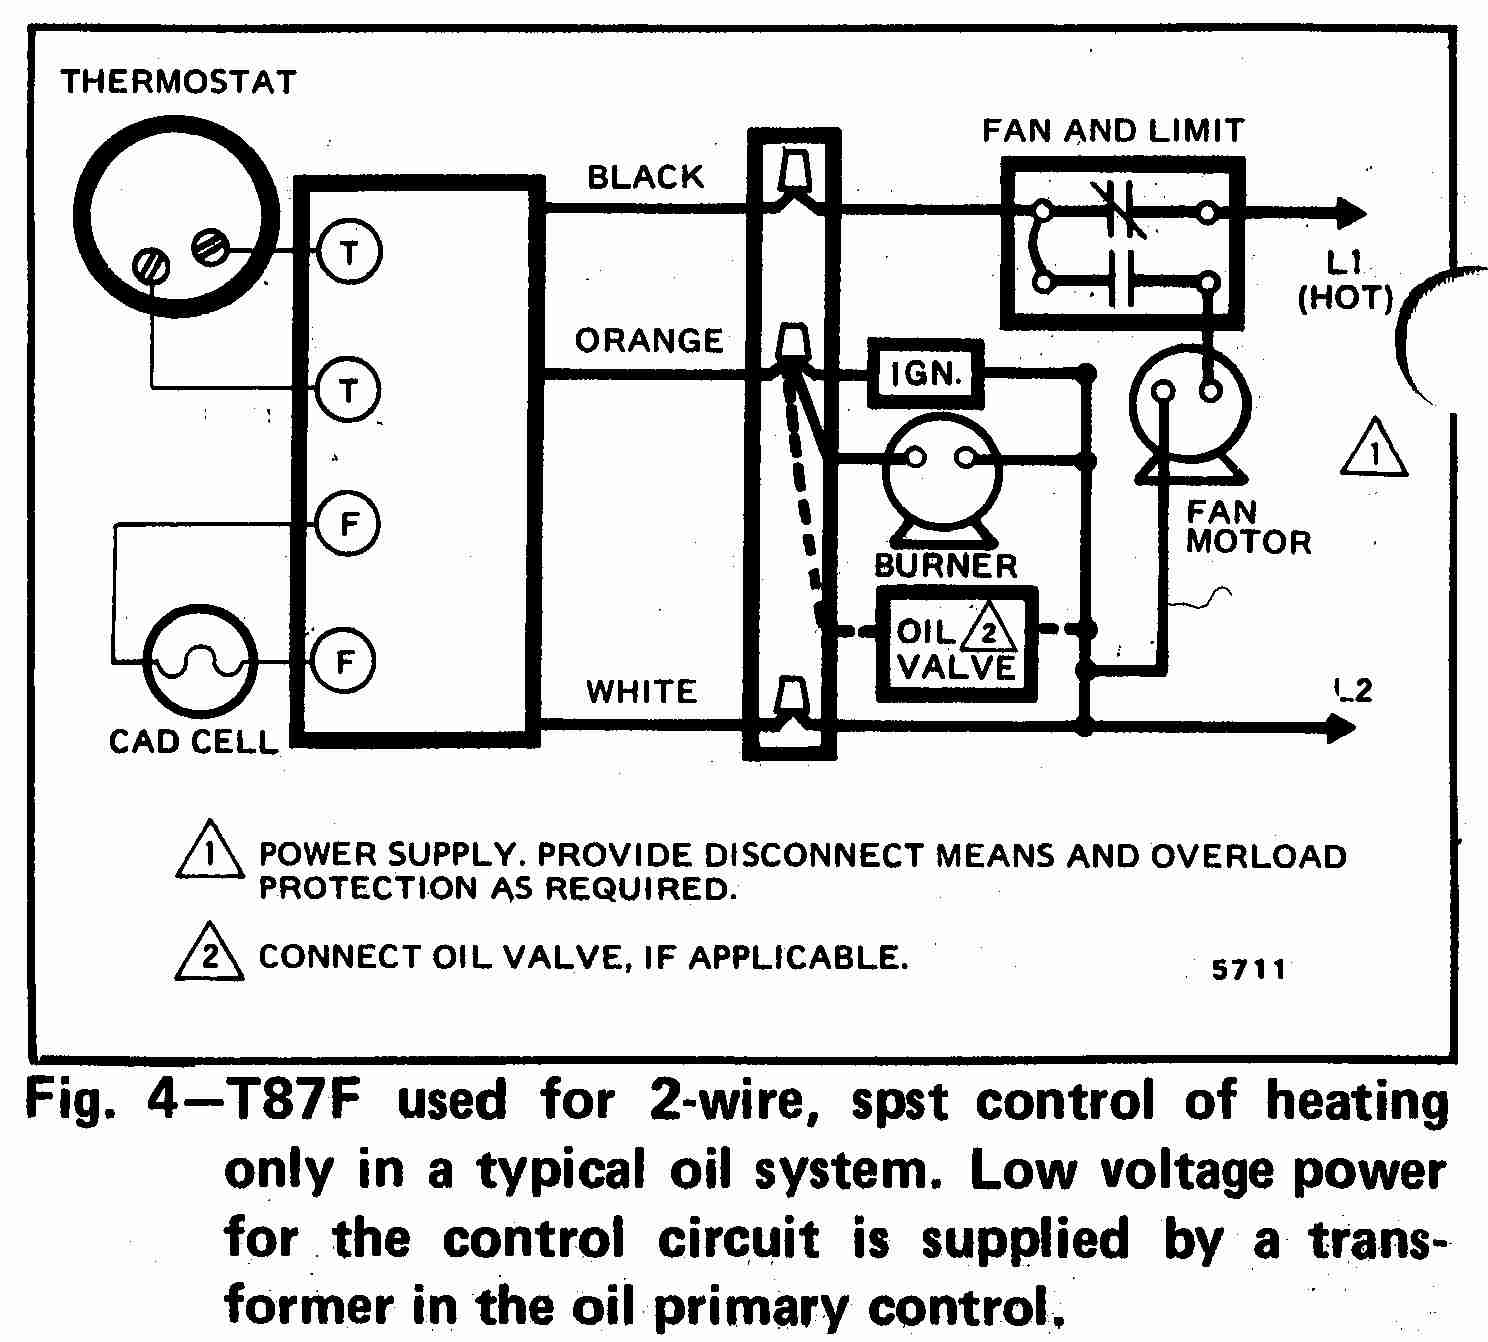 Thermostat Wiring Diagram Schematic - Wiring Diagram Article on